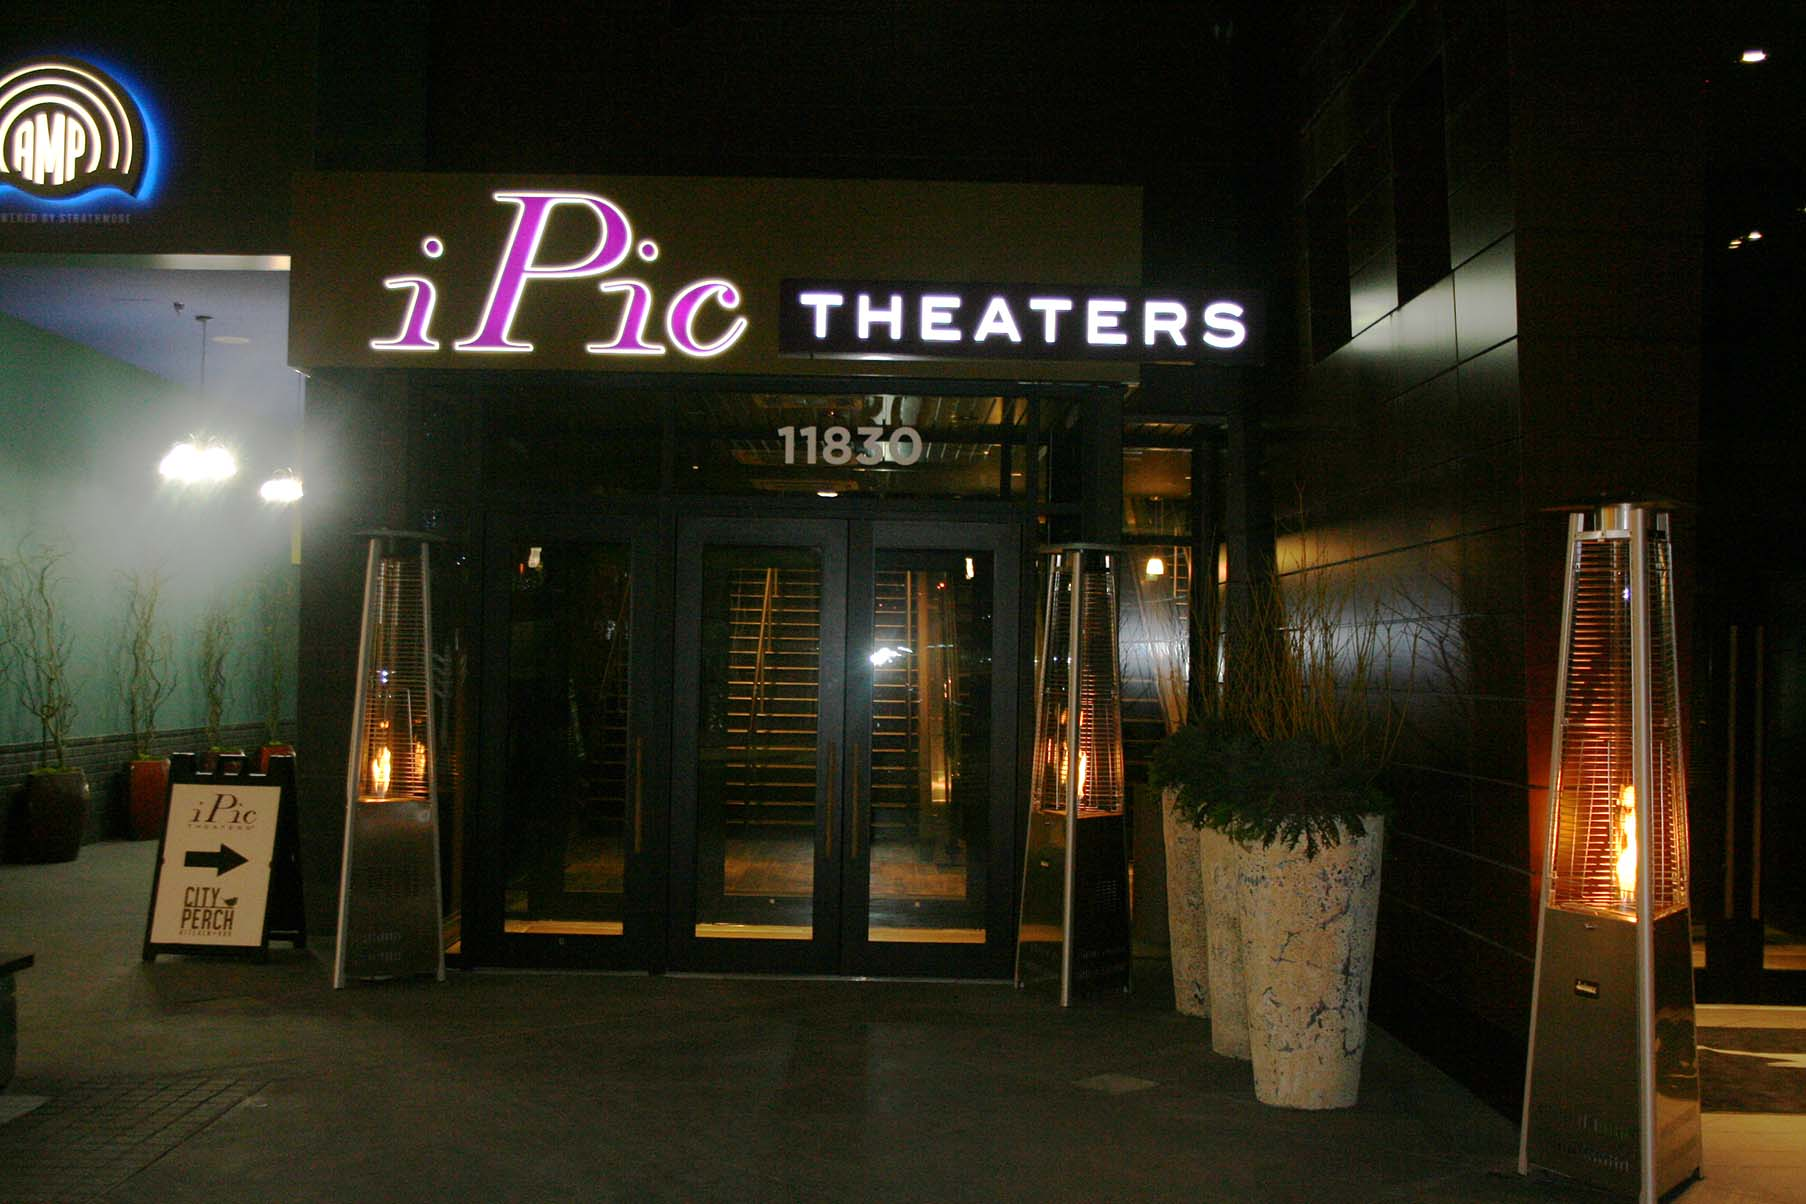 The new iPic Theater opened in the Pike & Rose Development along Rockville Pike in North Bethesda on Oct. 31. (Photo: Mark Heckathorn/DC on Heels)